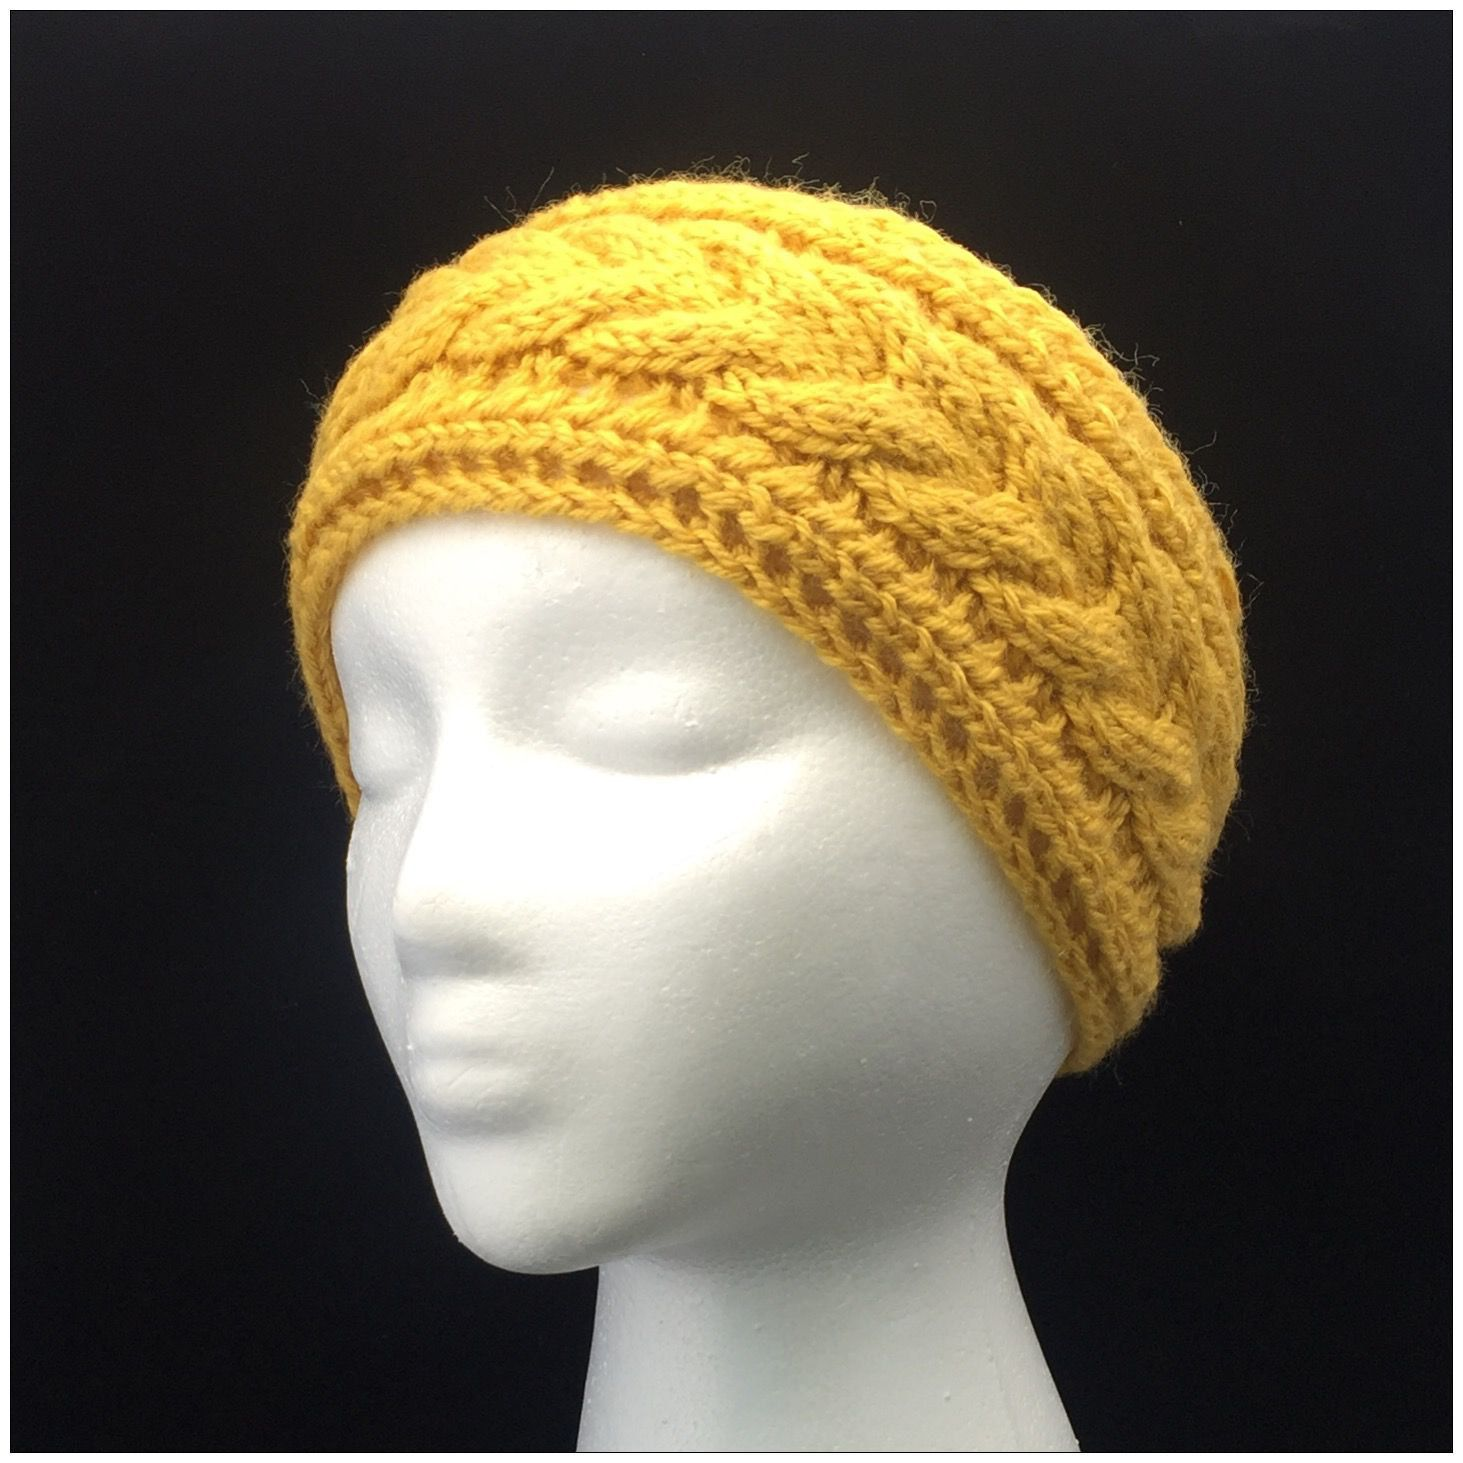 Knitting Pattern Headband, Cable Knit Headband Knitting Pattern ...